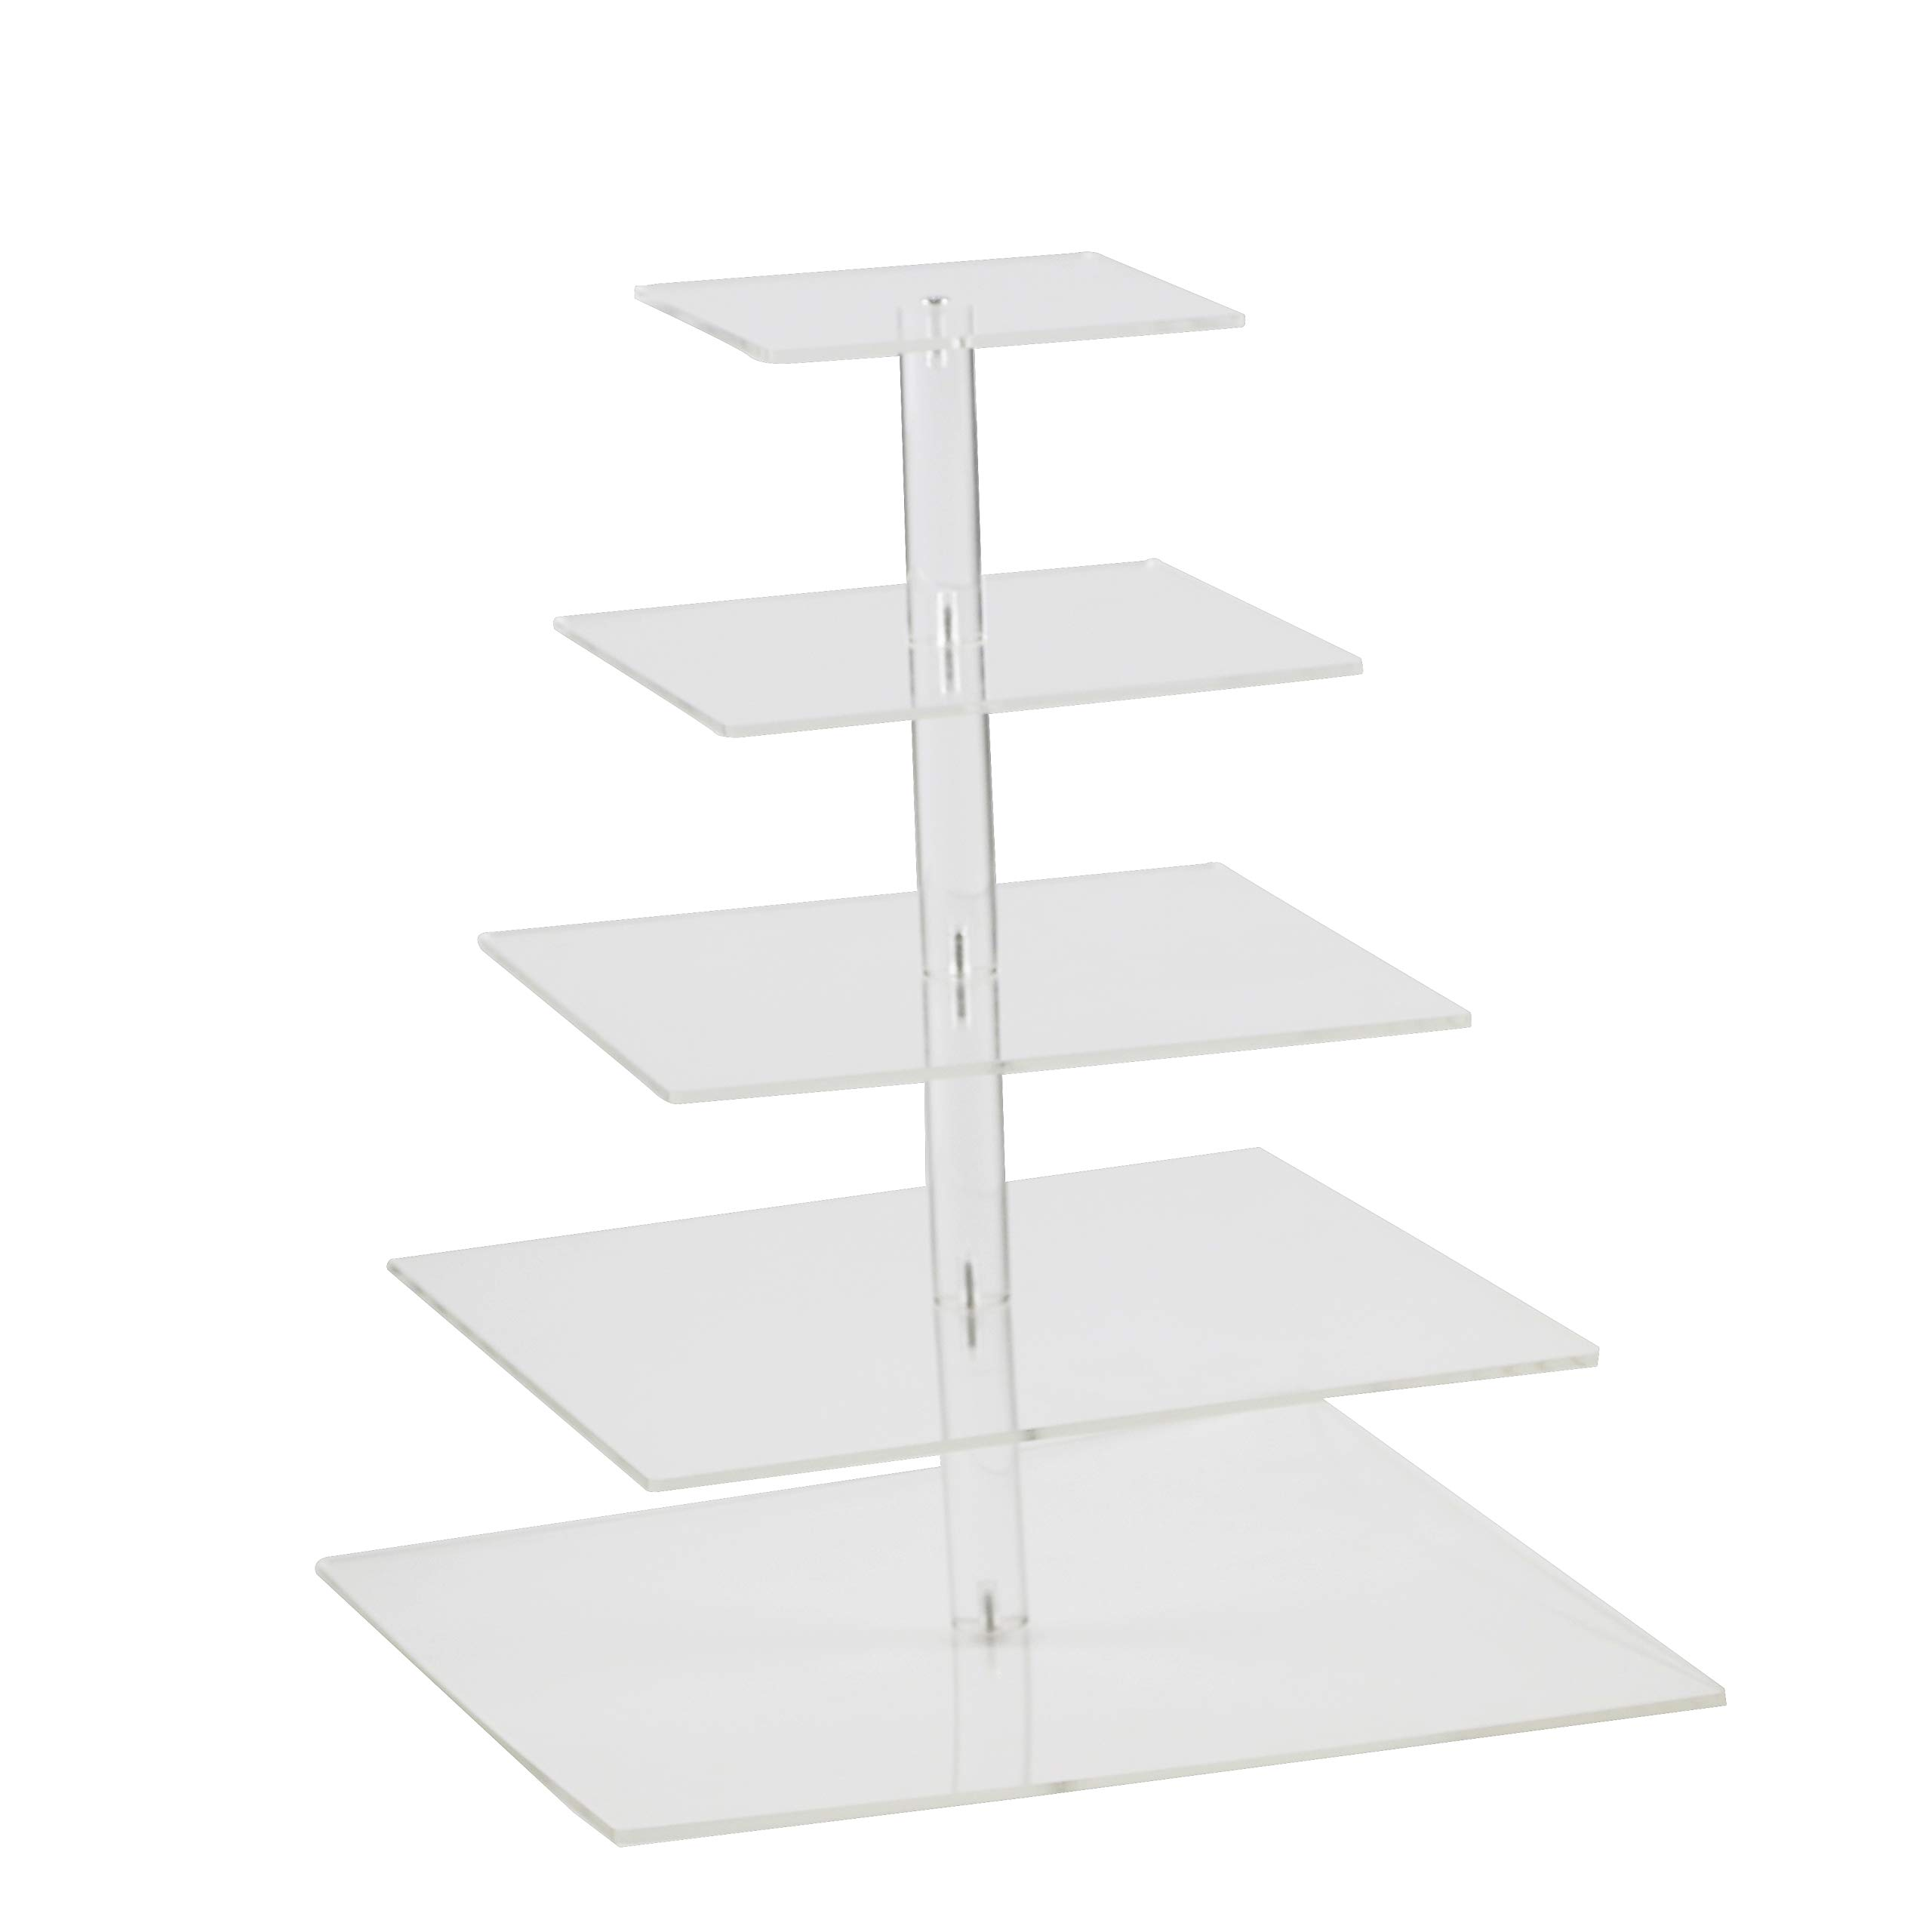 5 Tier Clear Square Acrylic Cupcake stand Wedding Cake Stand - Dessert Display Stand (5 tier square (4.7'' Layer spacing))